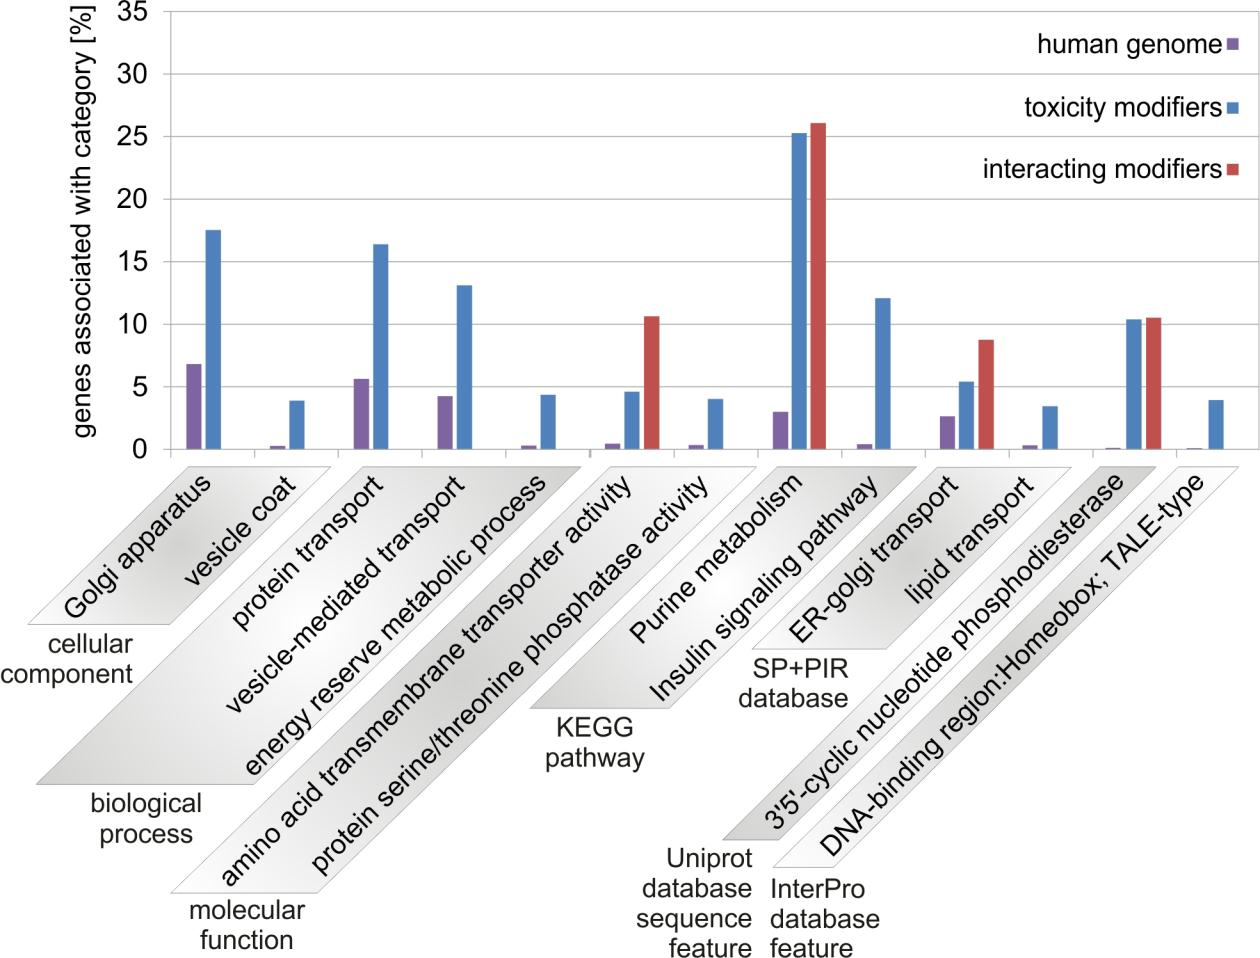 Results Figure 4-33: Gene-term enrichment analysis of toxicity modifiers.